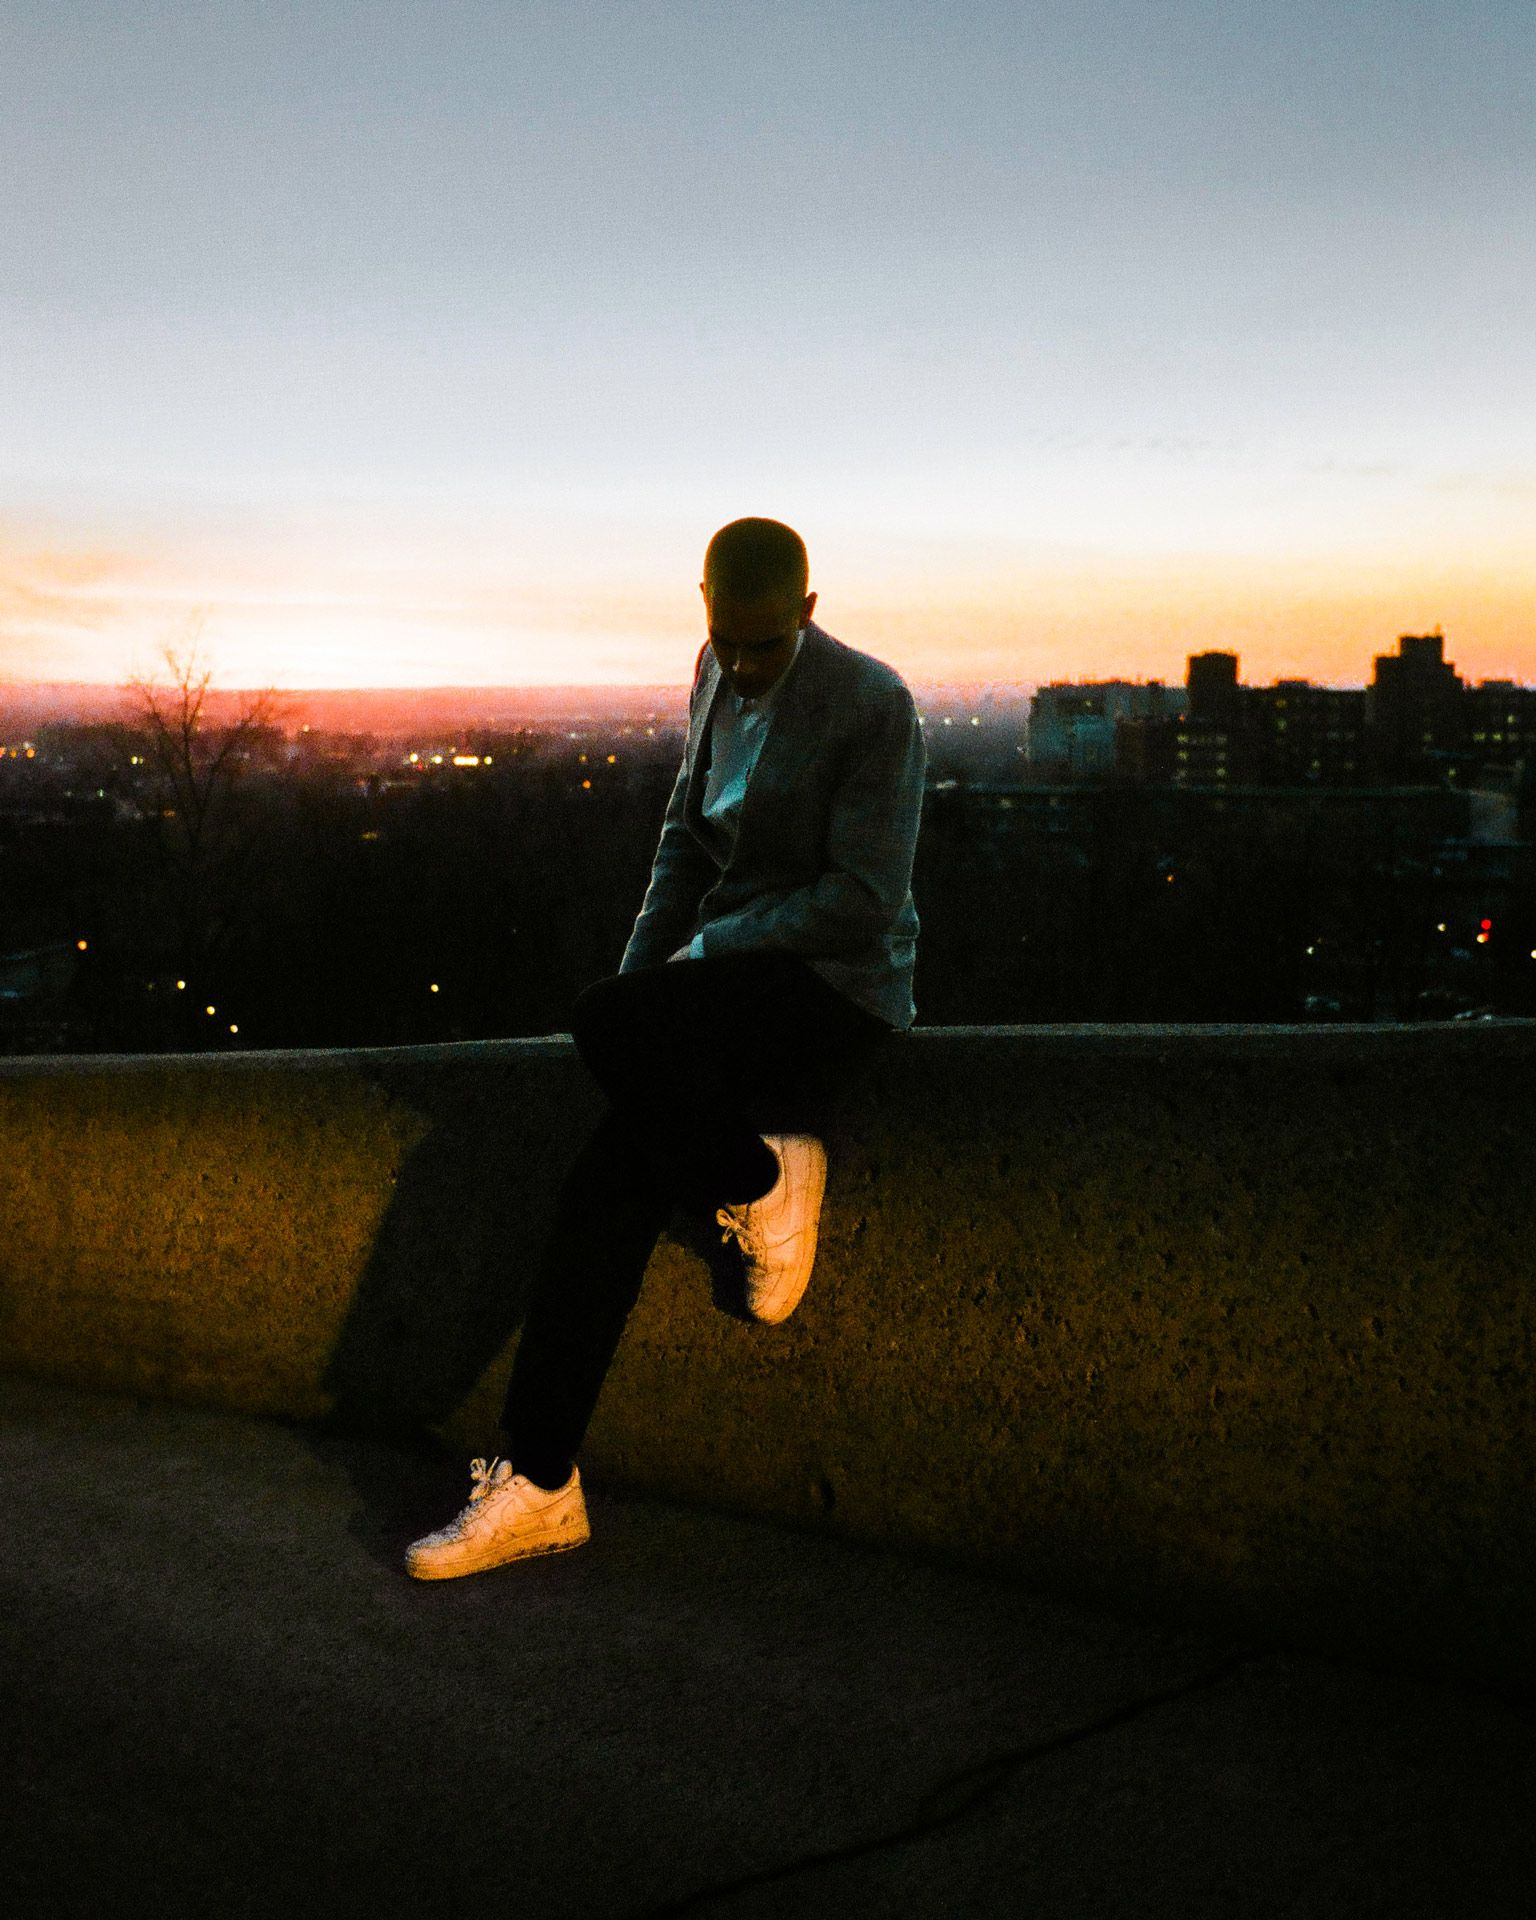 singer Yuki Dreams Again sitting on small stone wall at sunset with shoes blasted in orange light in behind the scenes of their promotional video filmed by Les Gamins